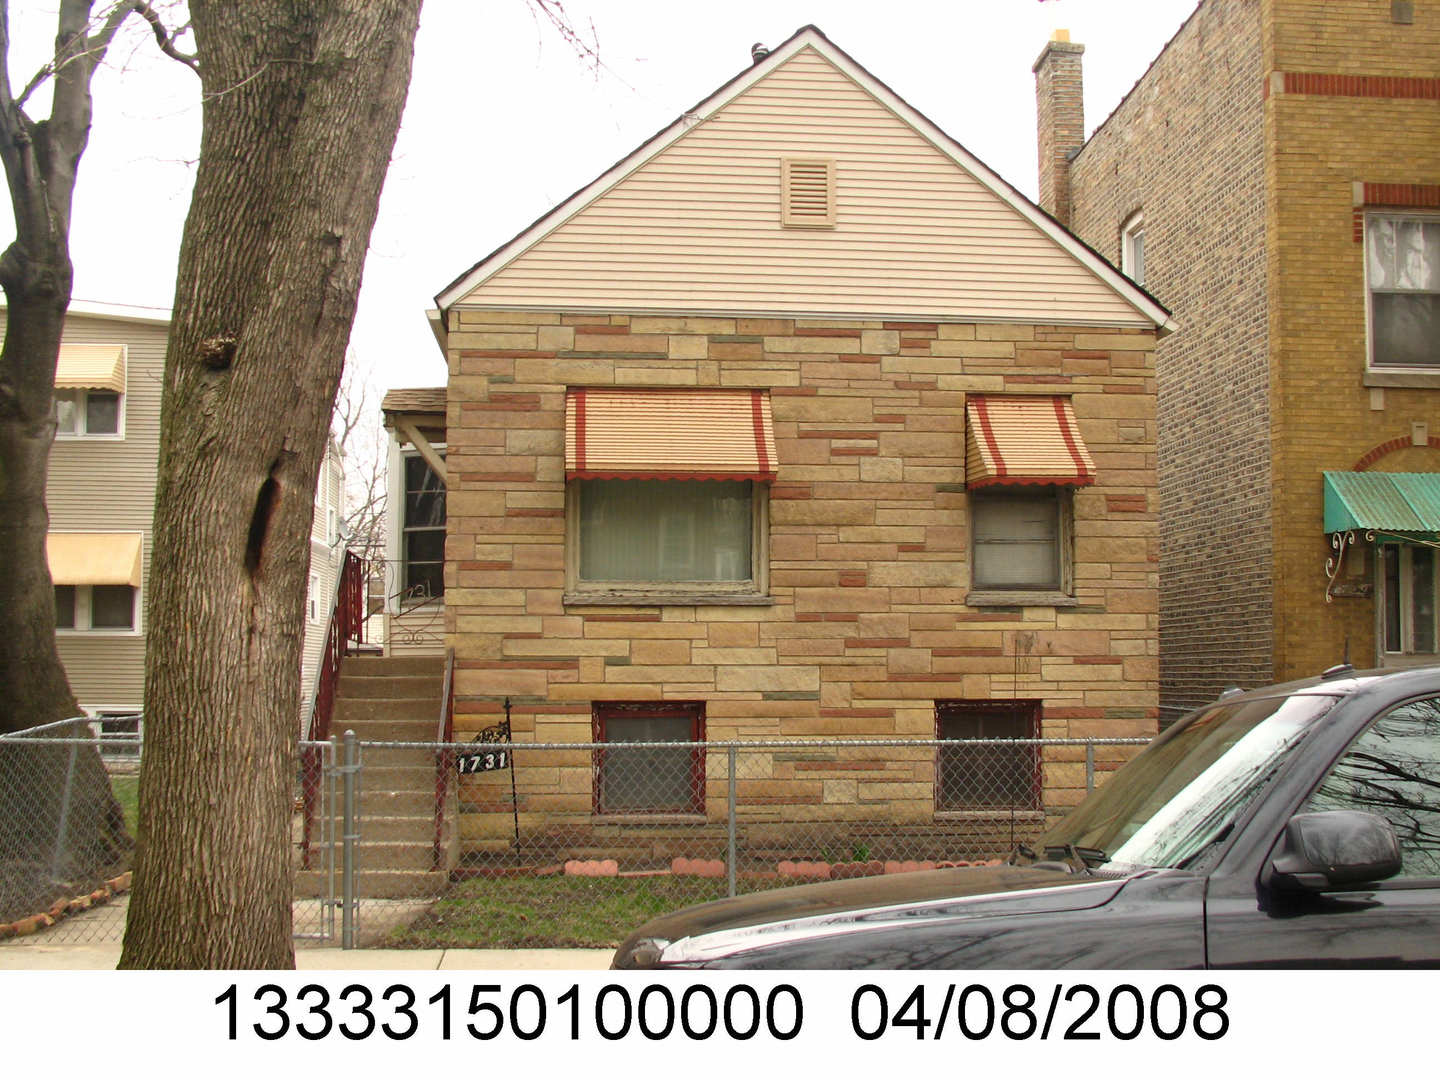 1731 Long ,Chicago, Illinois 60639